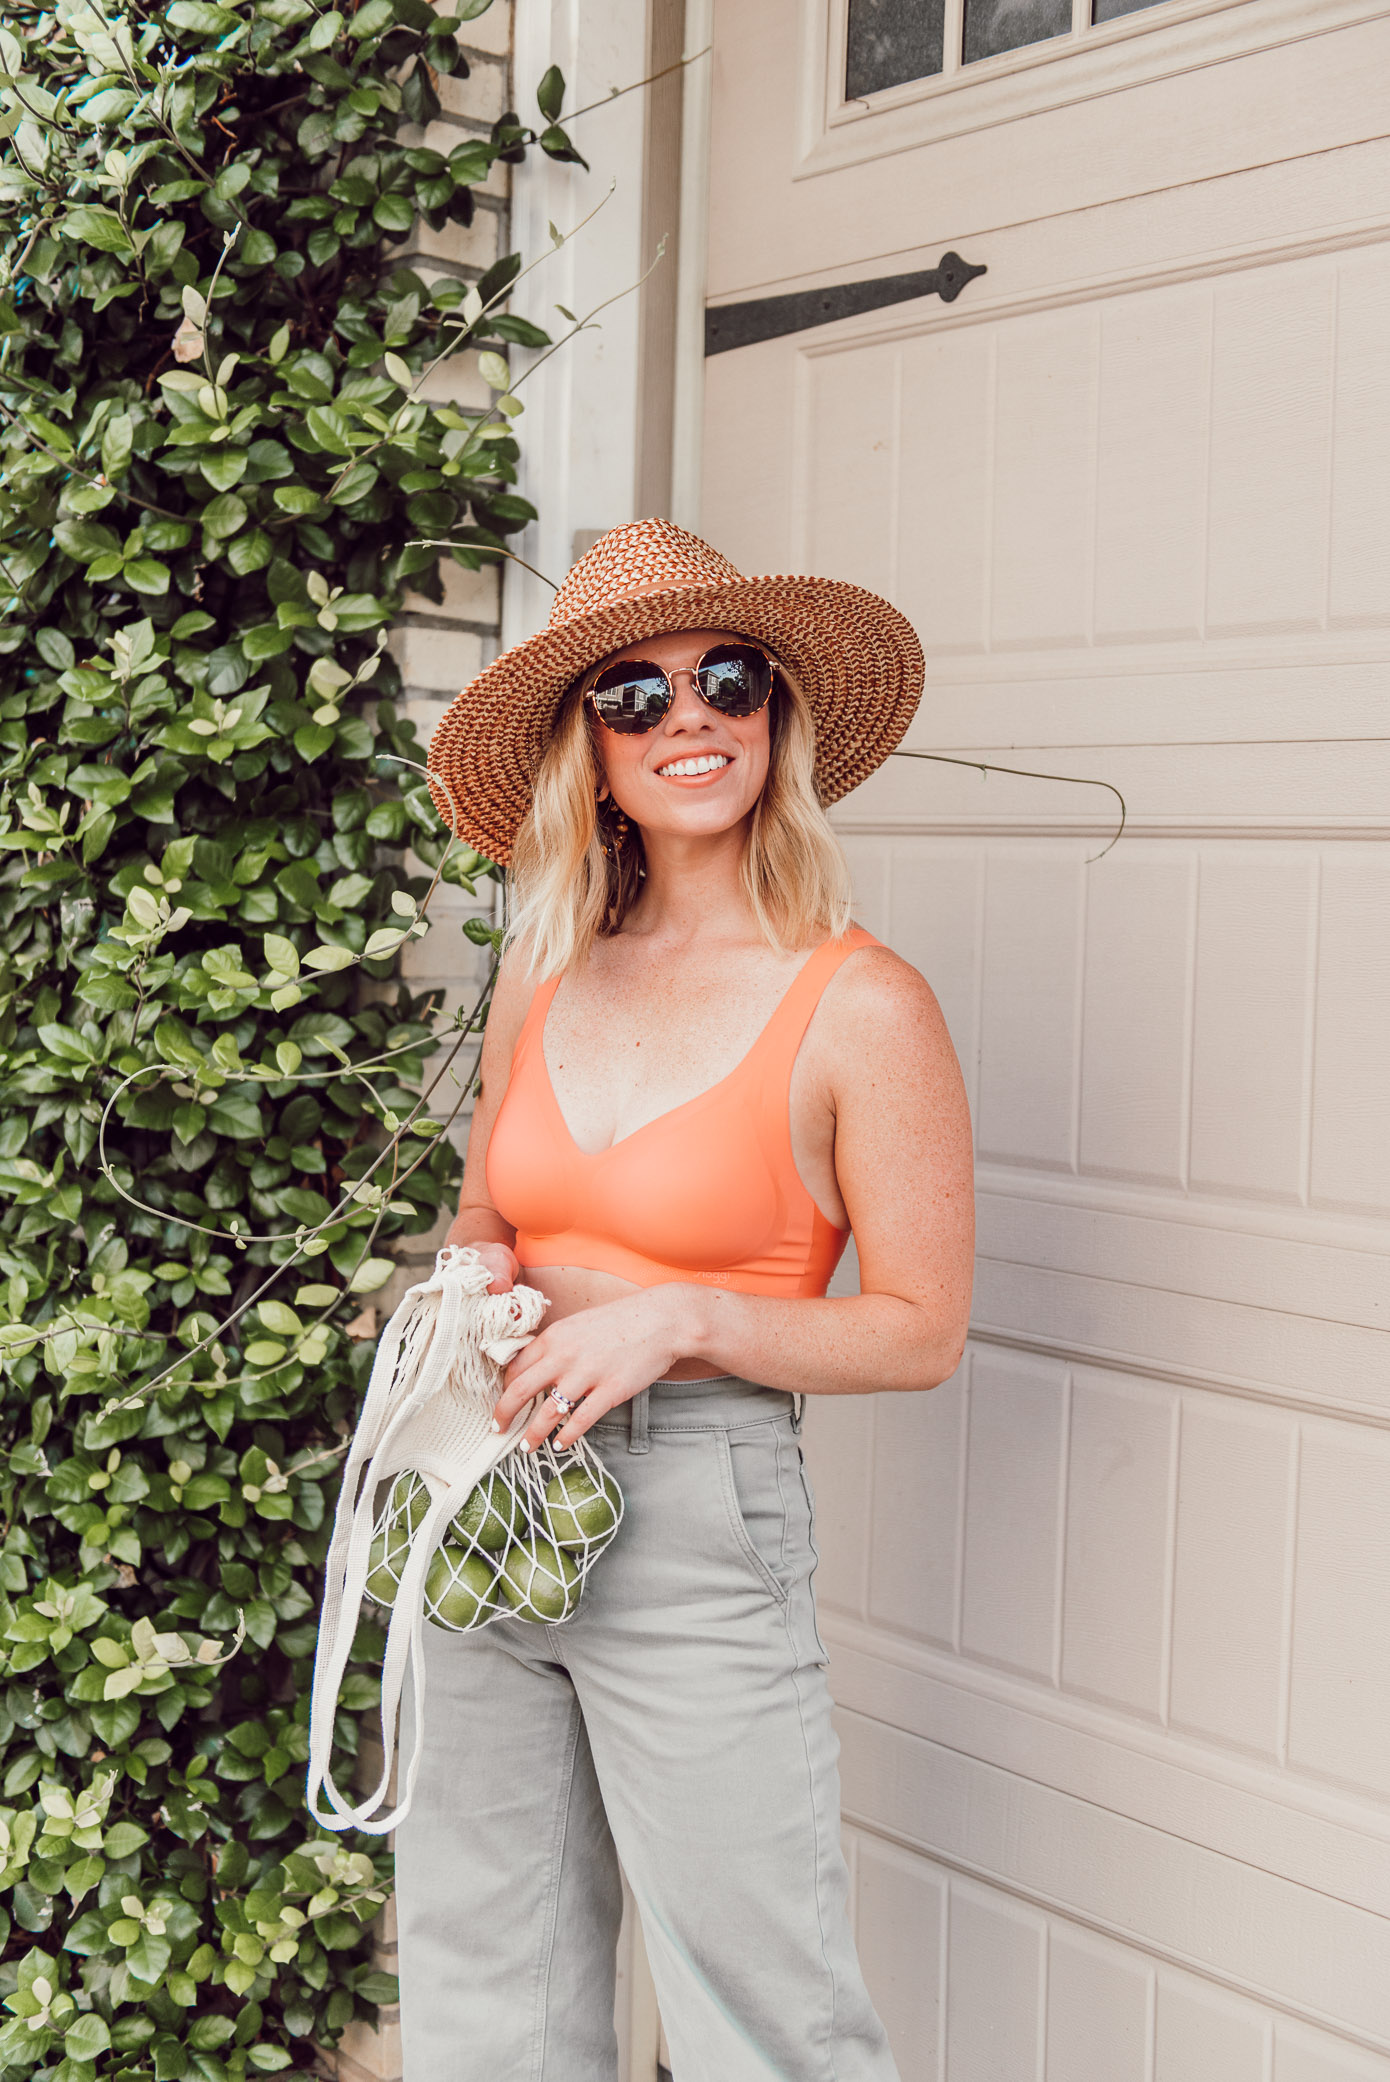 The Comfiest Bralette for Everyday Wear | How to Style Bralette for Summer | Louella Reese